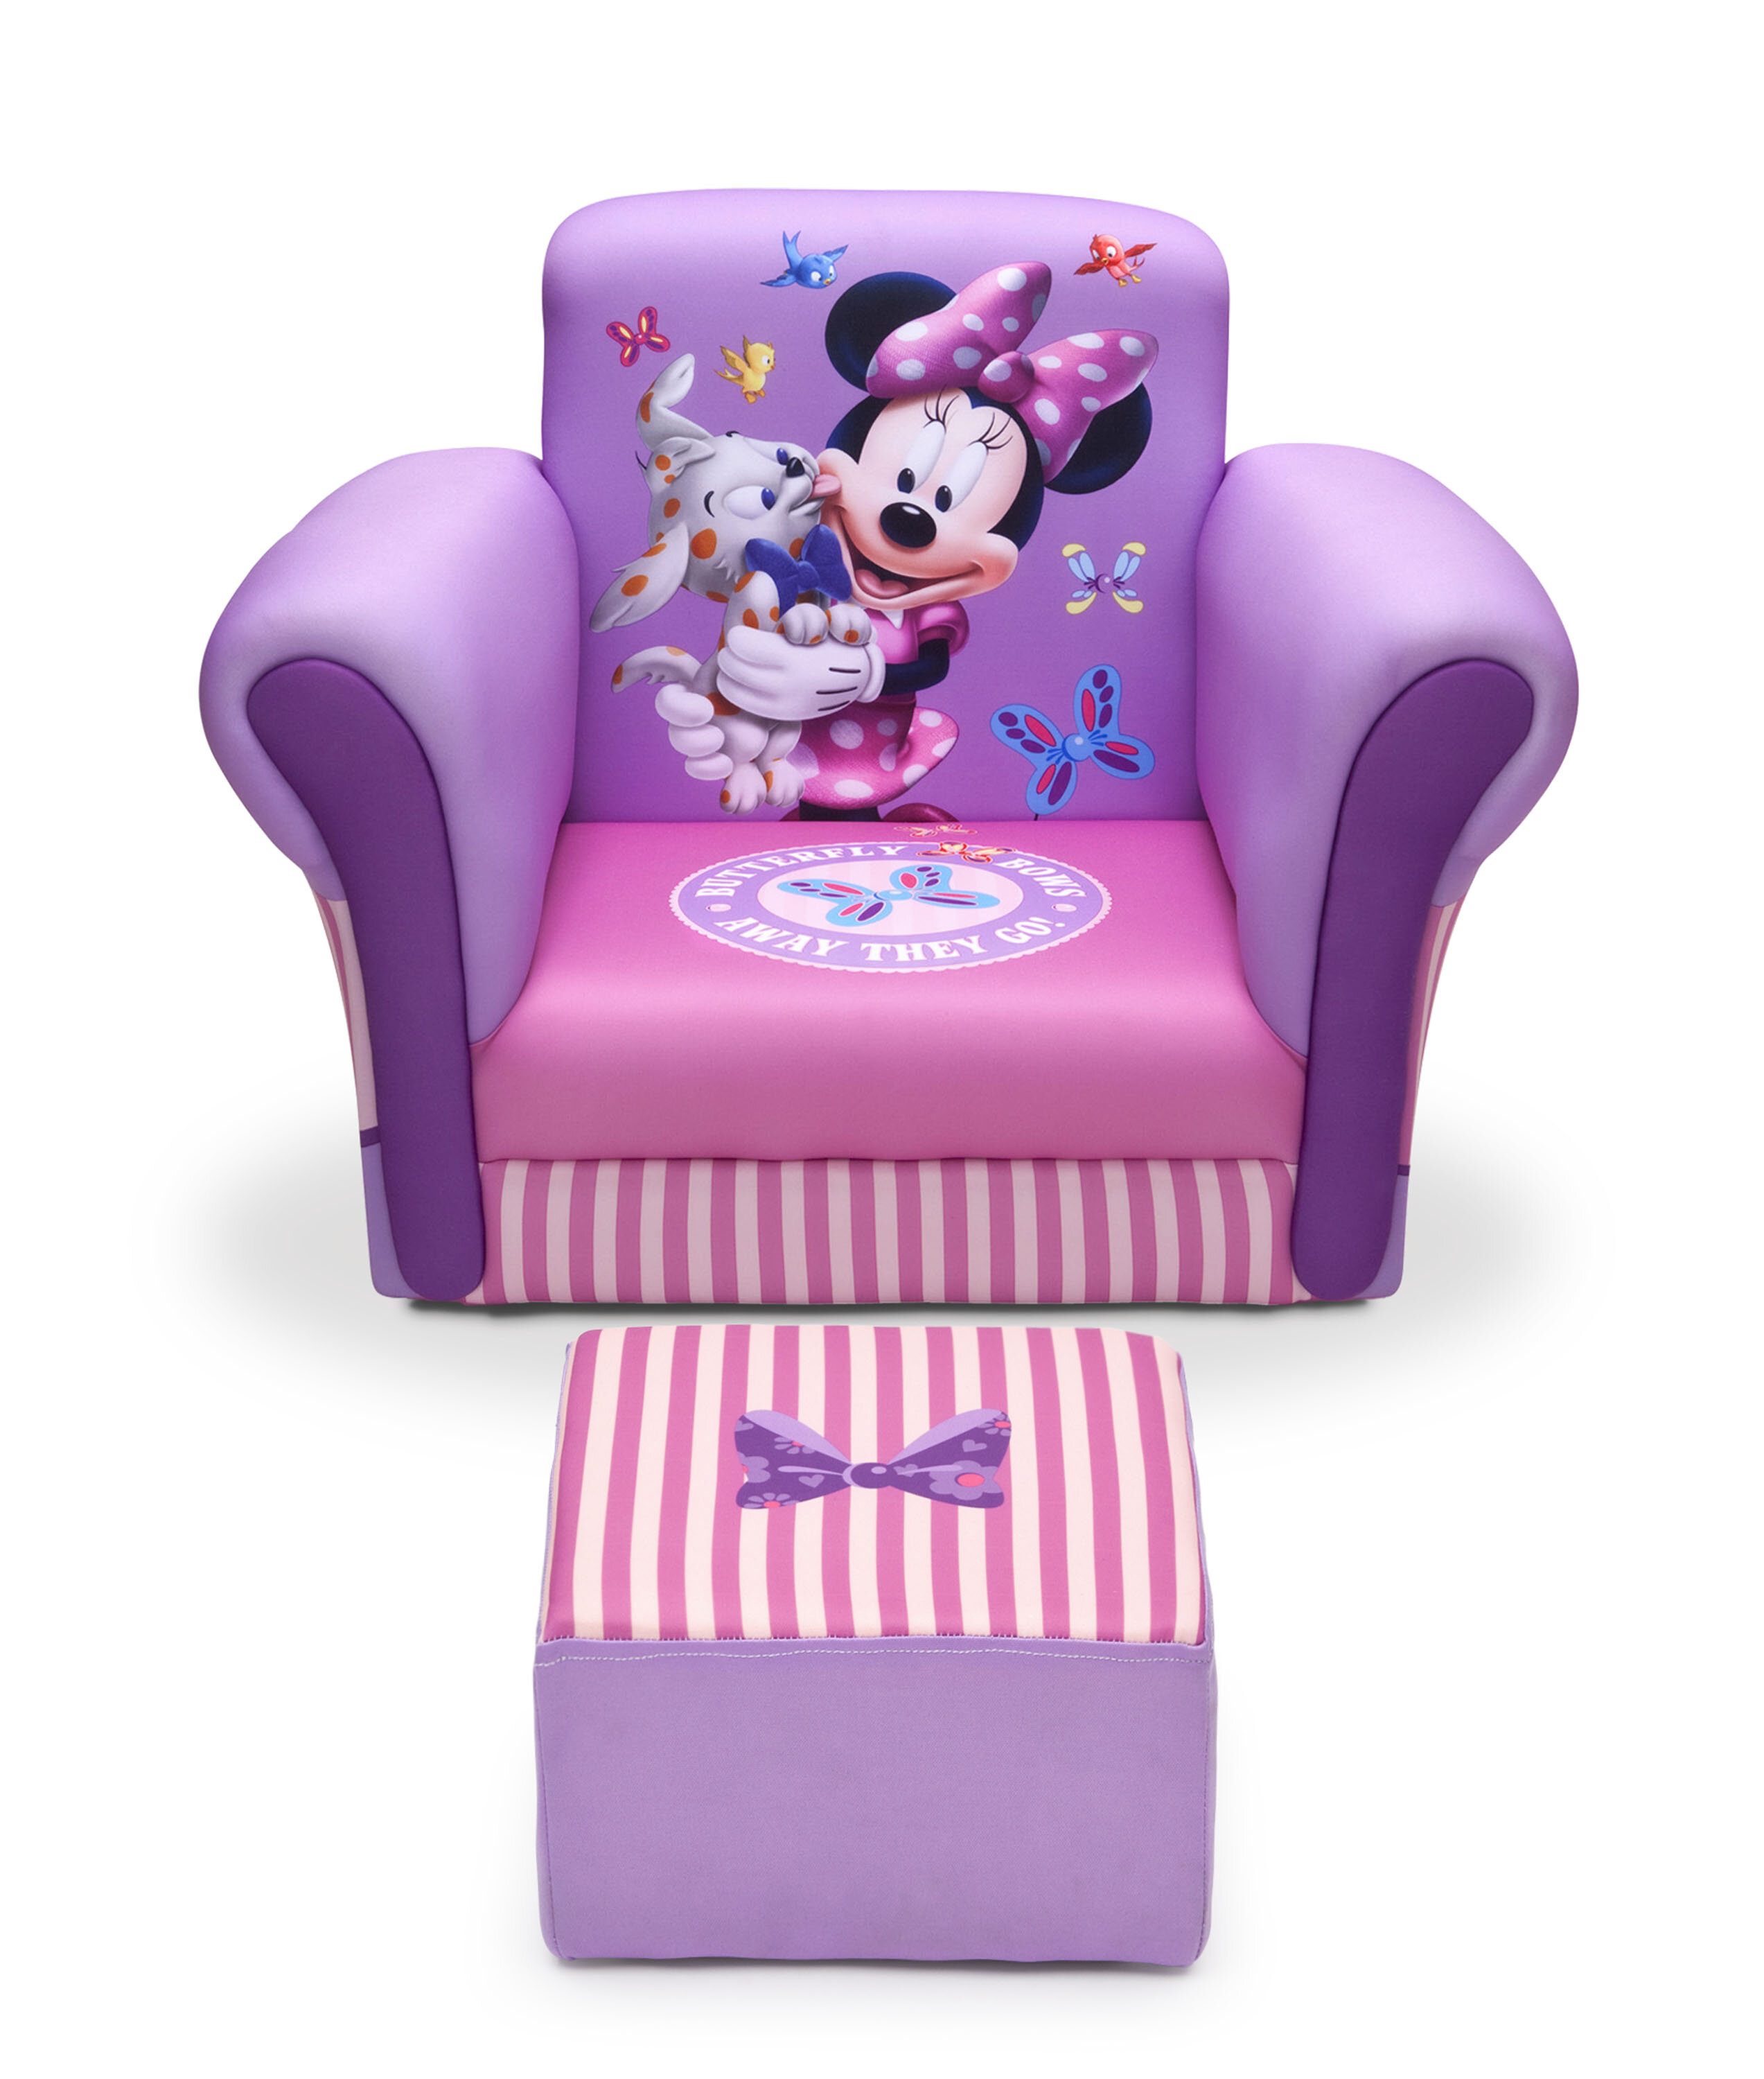 Superieur Delta Children Minnie Mouse Upholstered Kids Club Chair And Ottoman U0026  Reviews | Wayfair